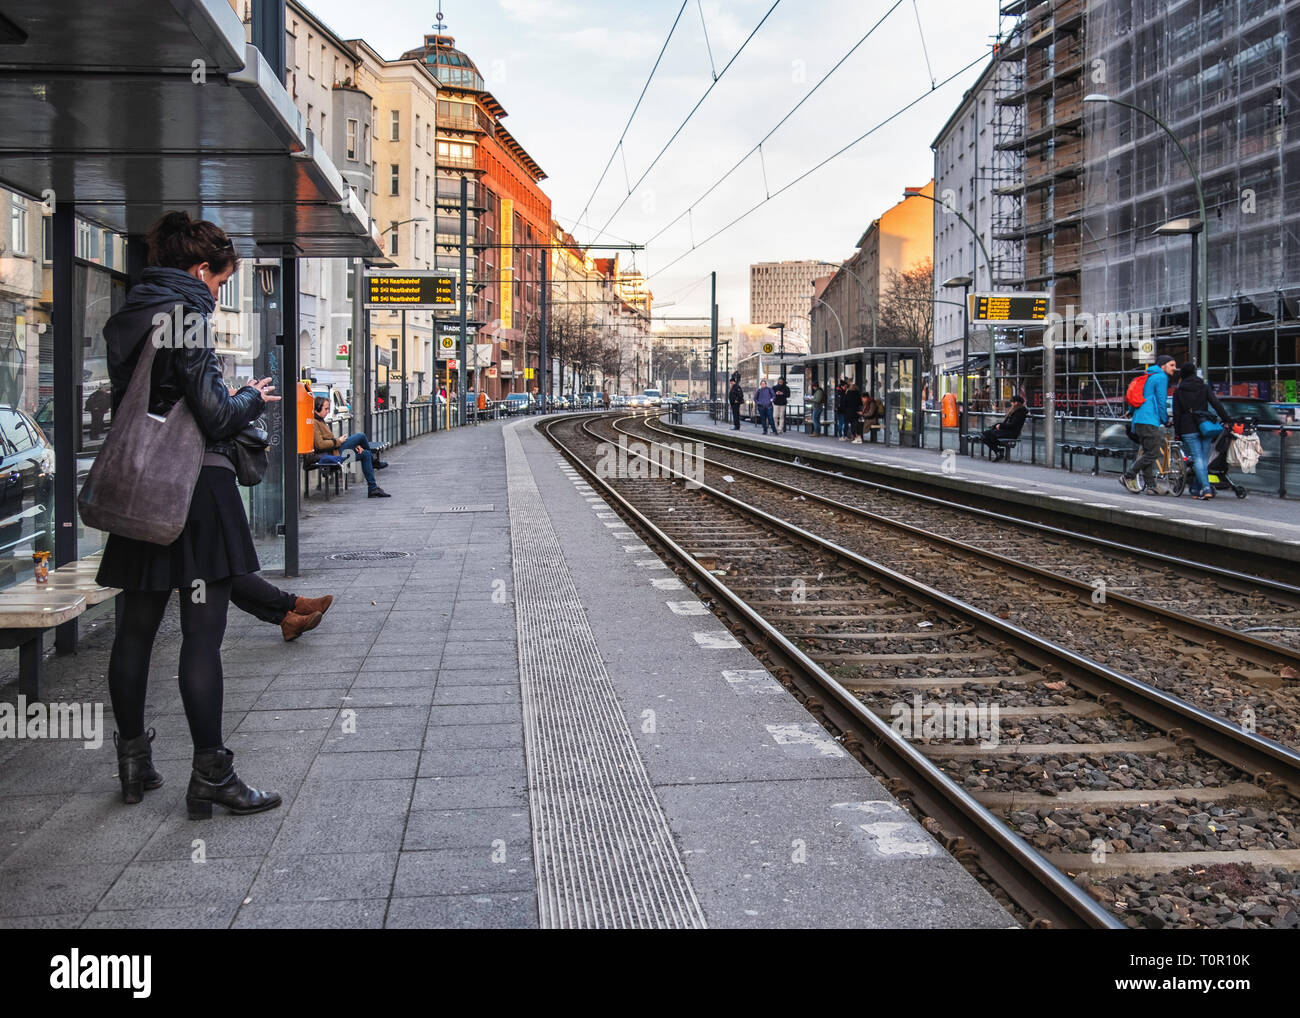 Berlin-Mitte. Rosa-Luxemburg-Platz U-Bahn tram stop with platform, people waiting and tram lines - Stock Image